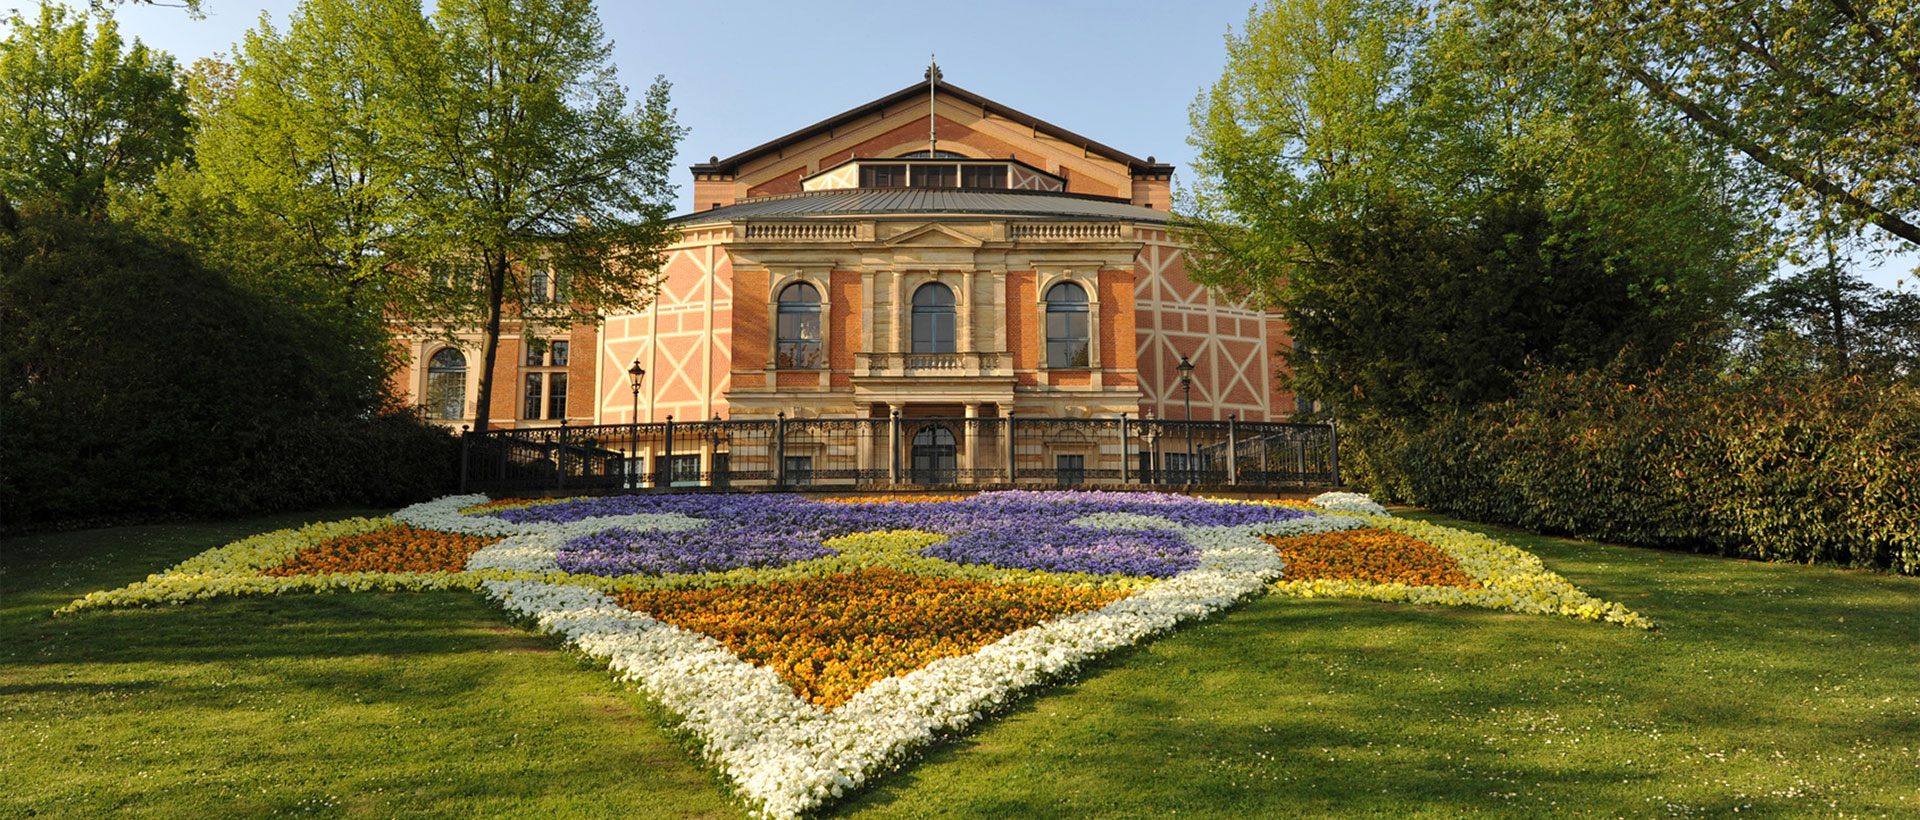 Bus to Bayreuth from $5.99 | Travel with FlixBus